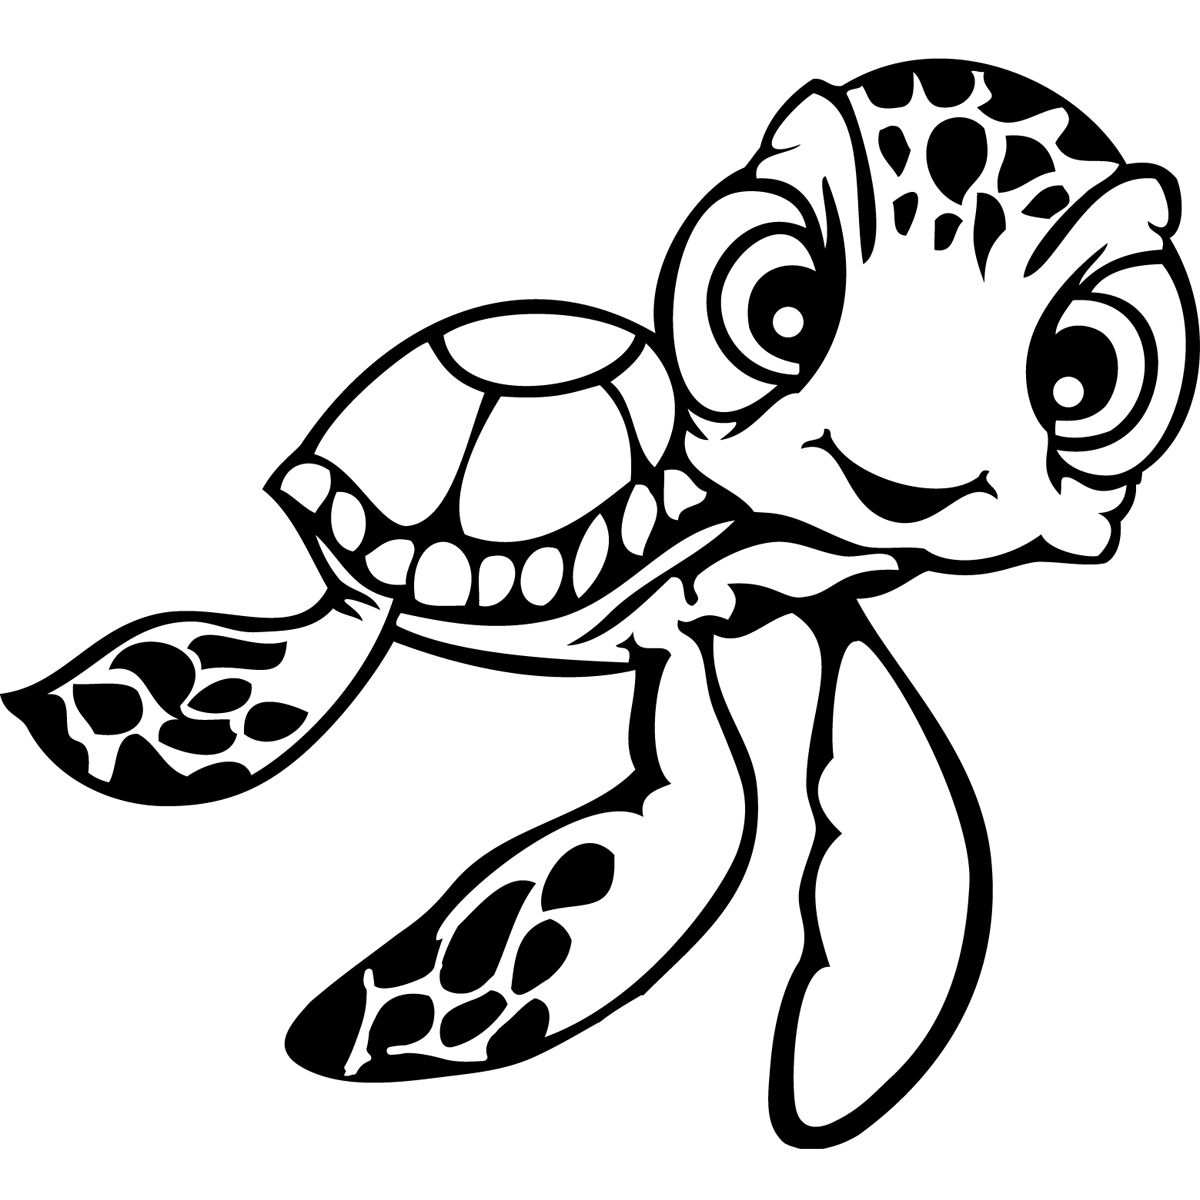 Finding Nemo Coloring Pages Bing Images Schildpad Tekening